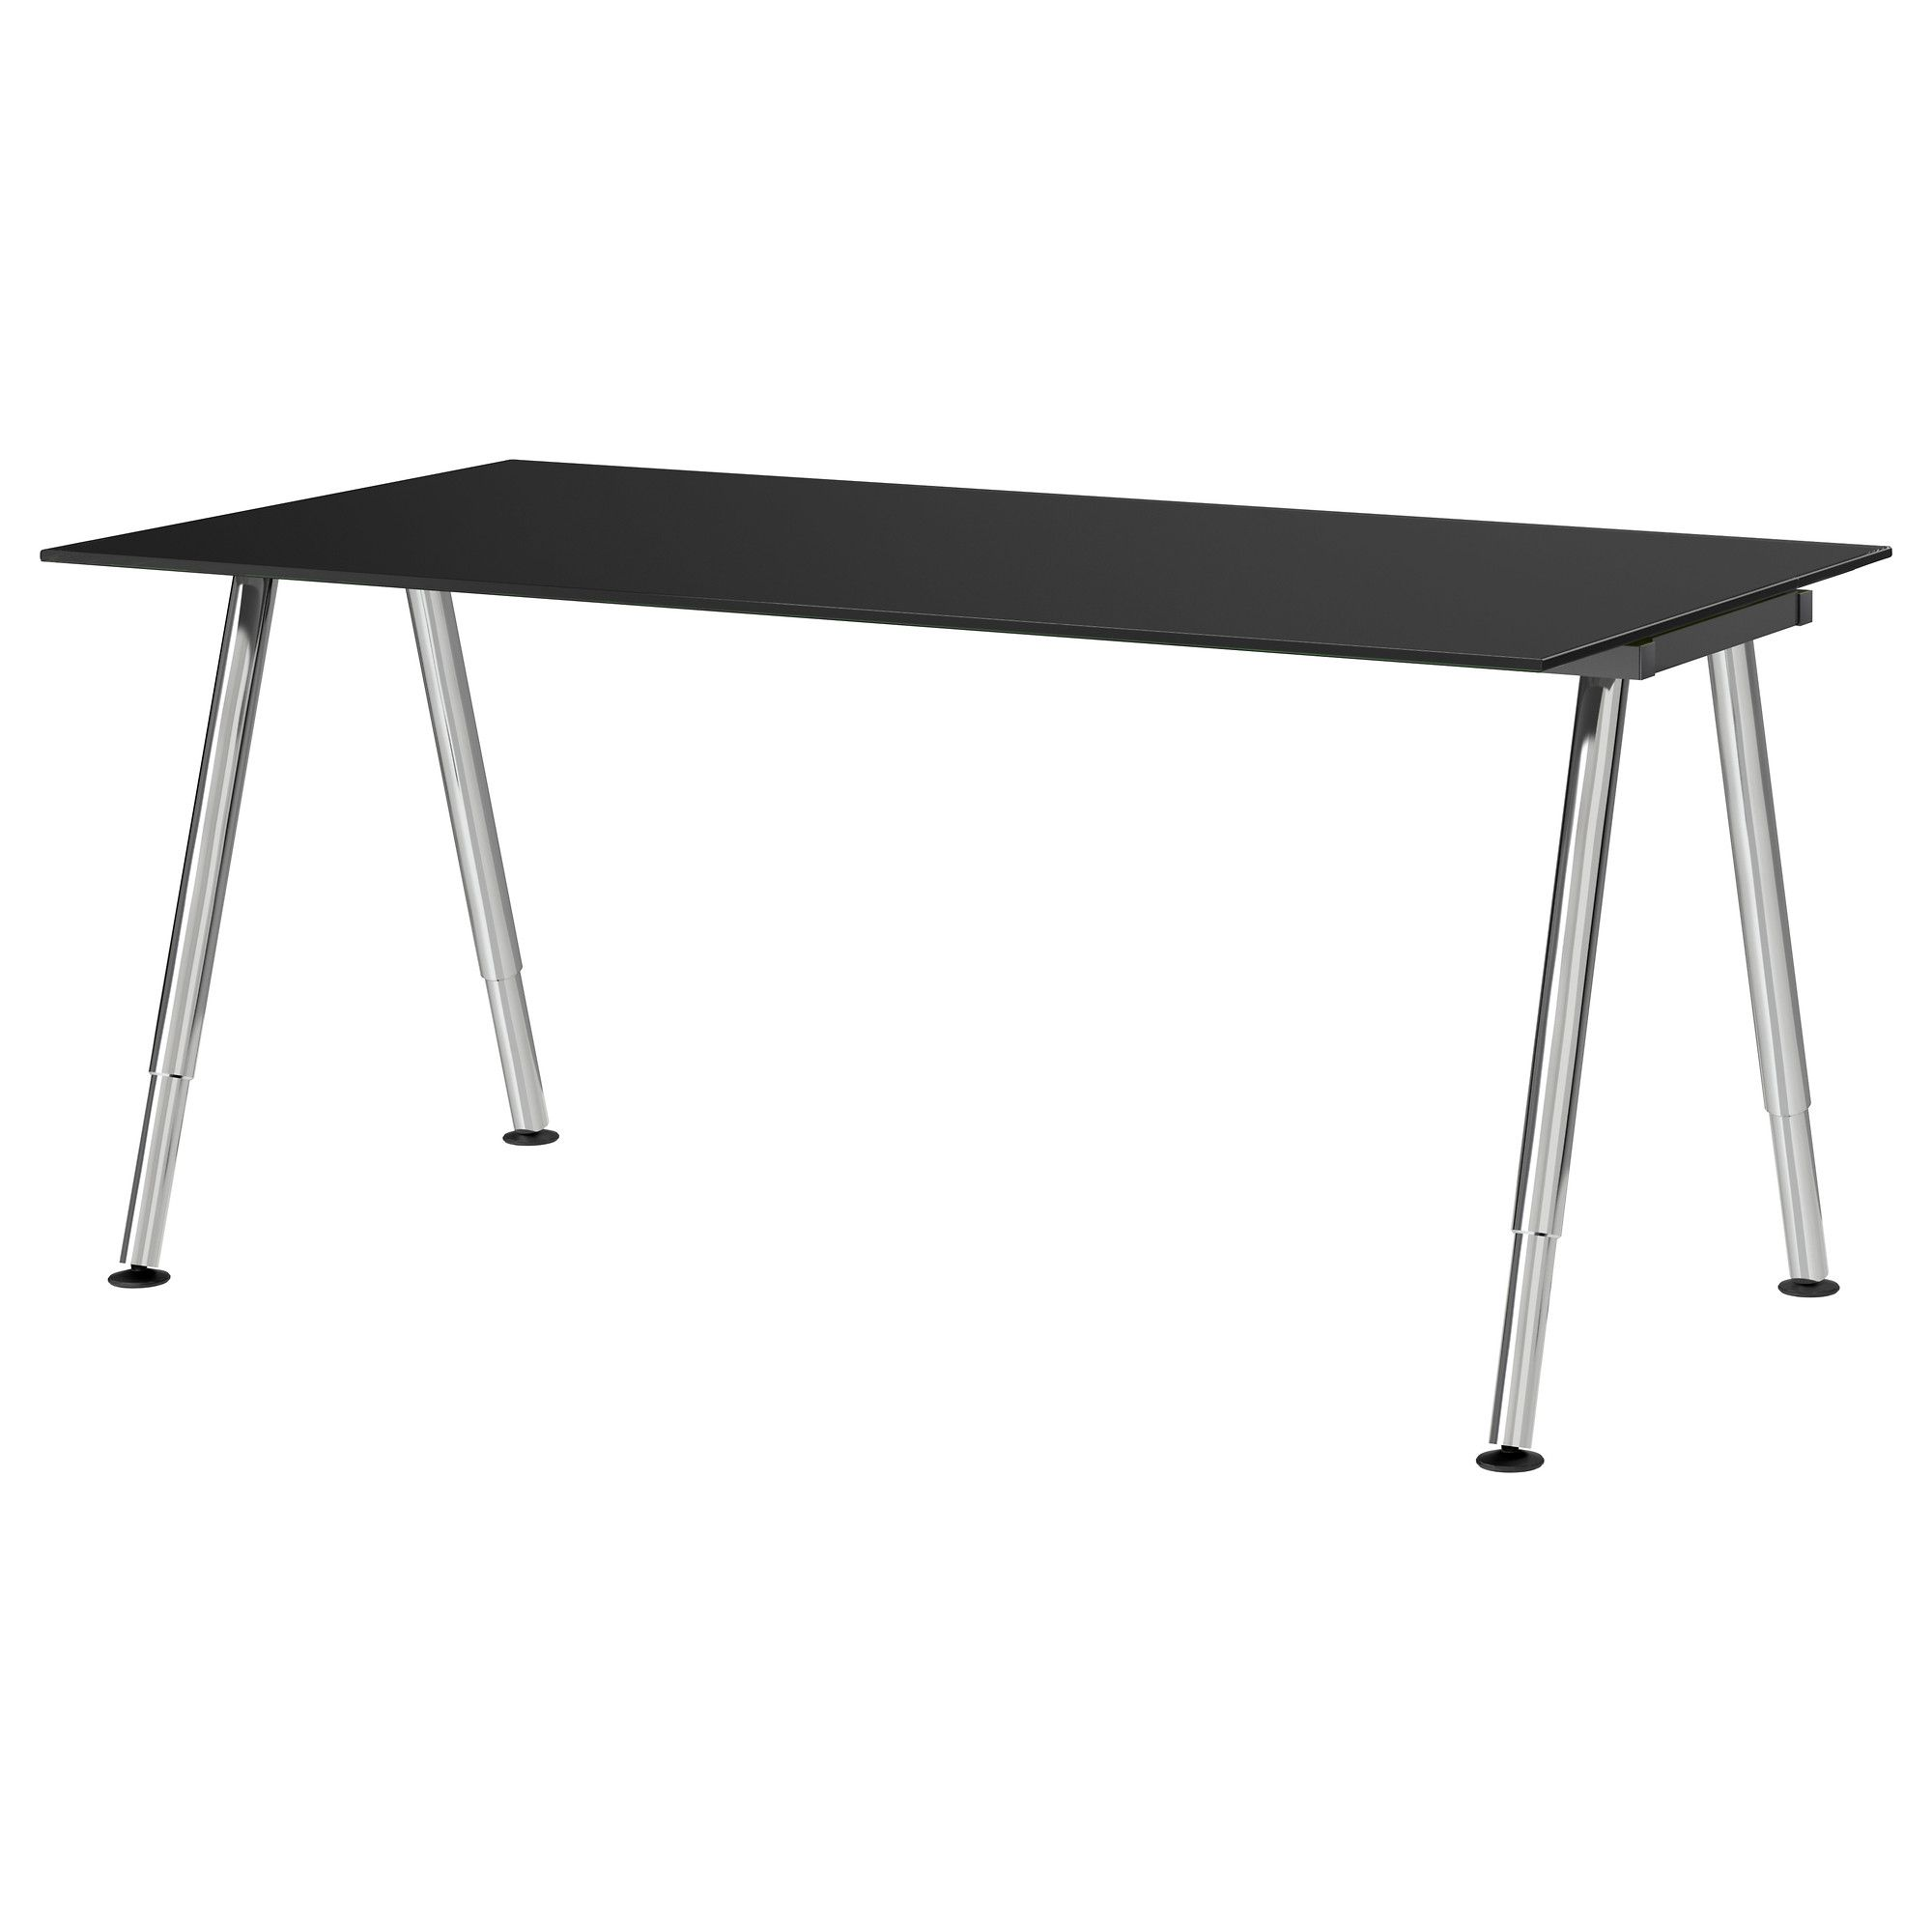 Us Furniture And Home Furnishings Apartment Design Black Glass Desk Home Furnishings